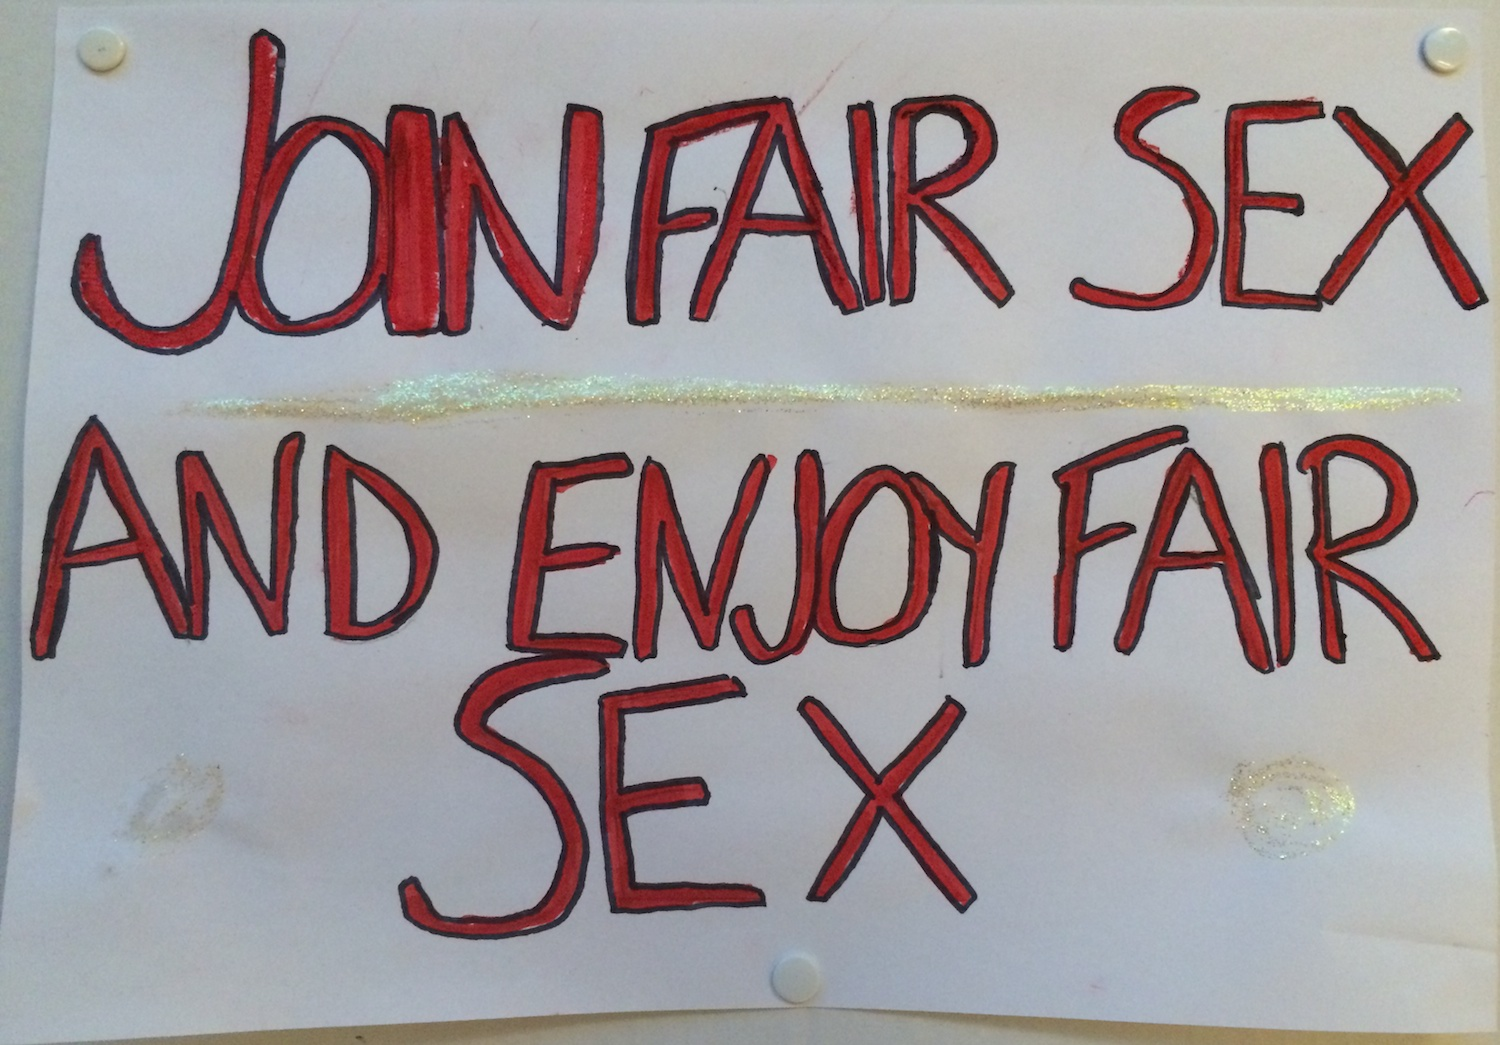 Join fair sex and enjoy fair sex